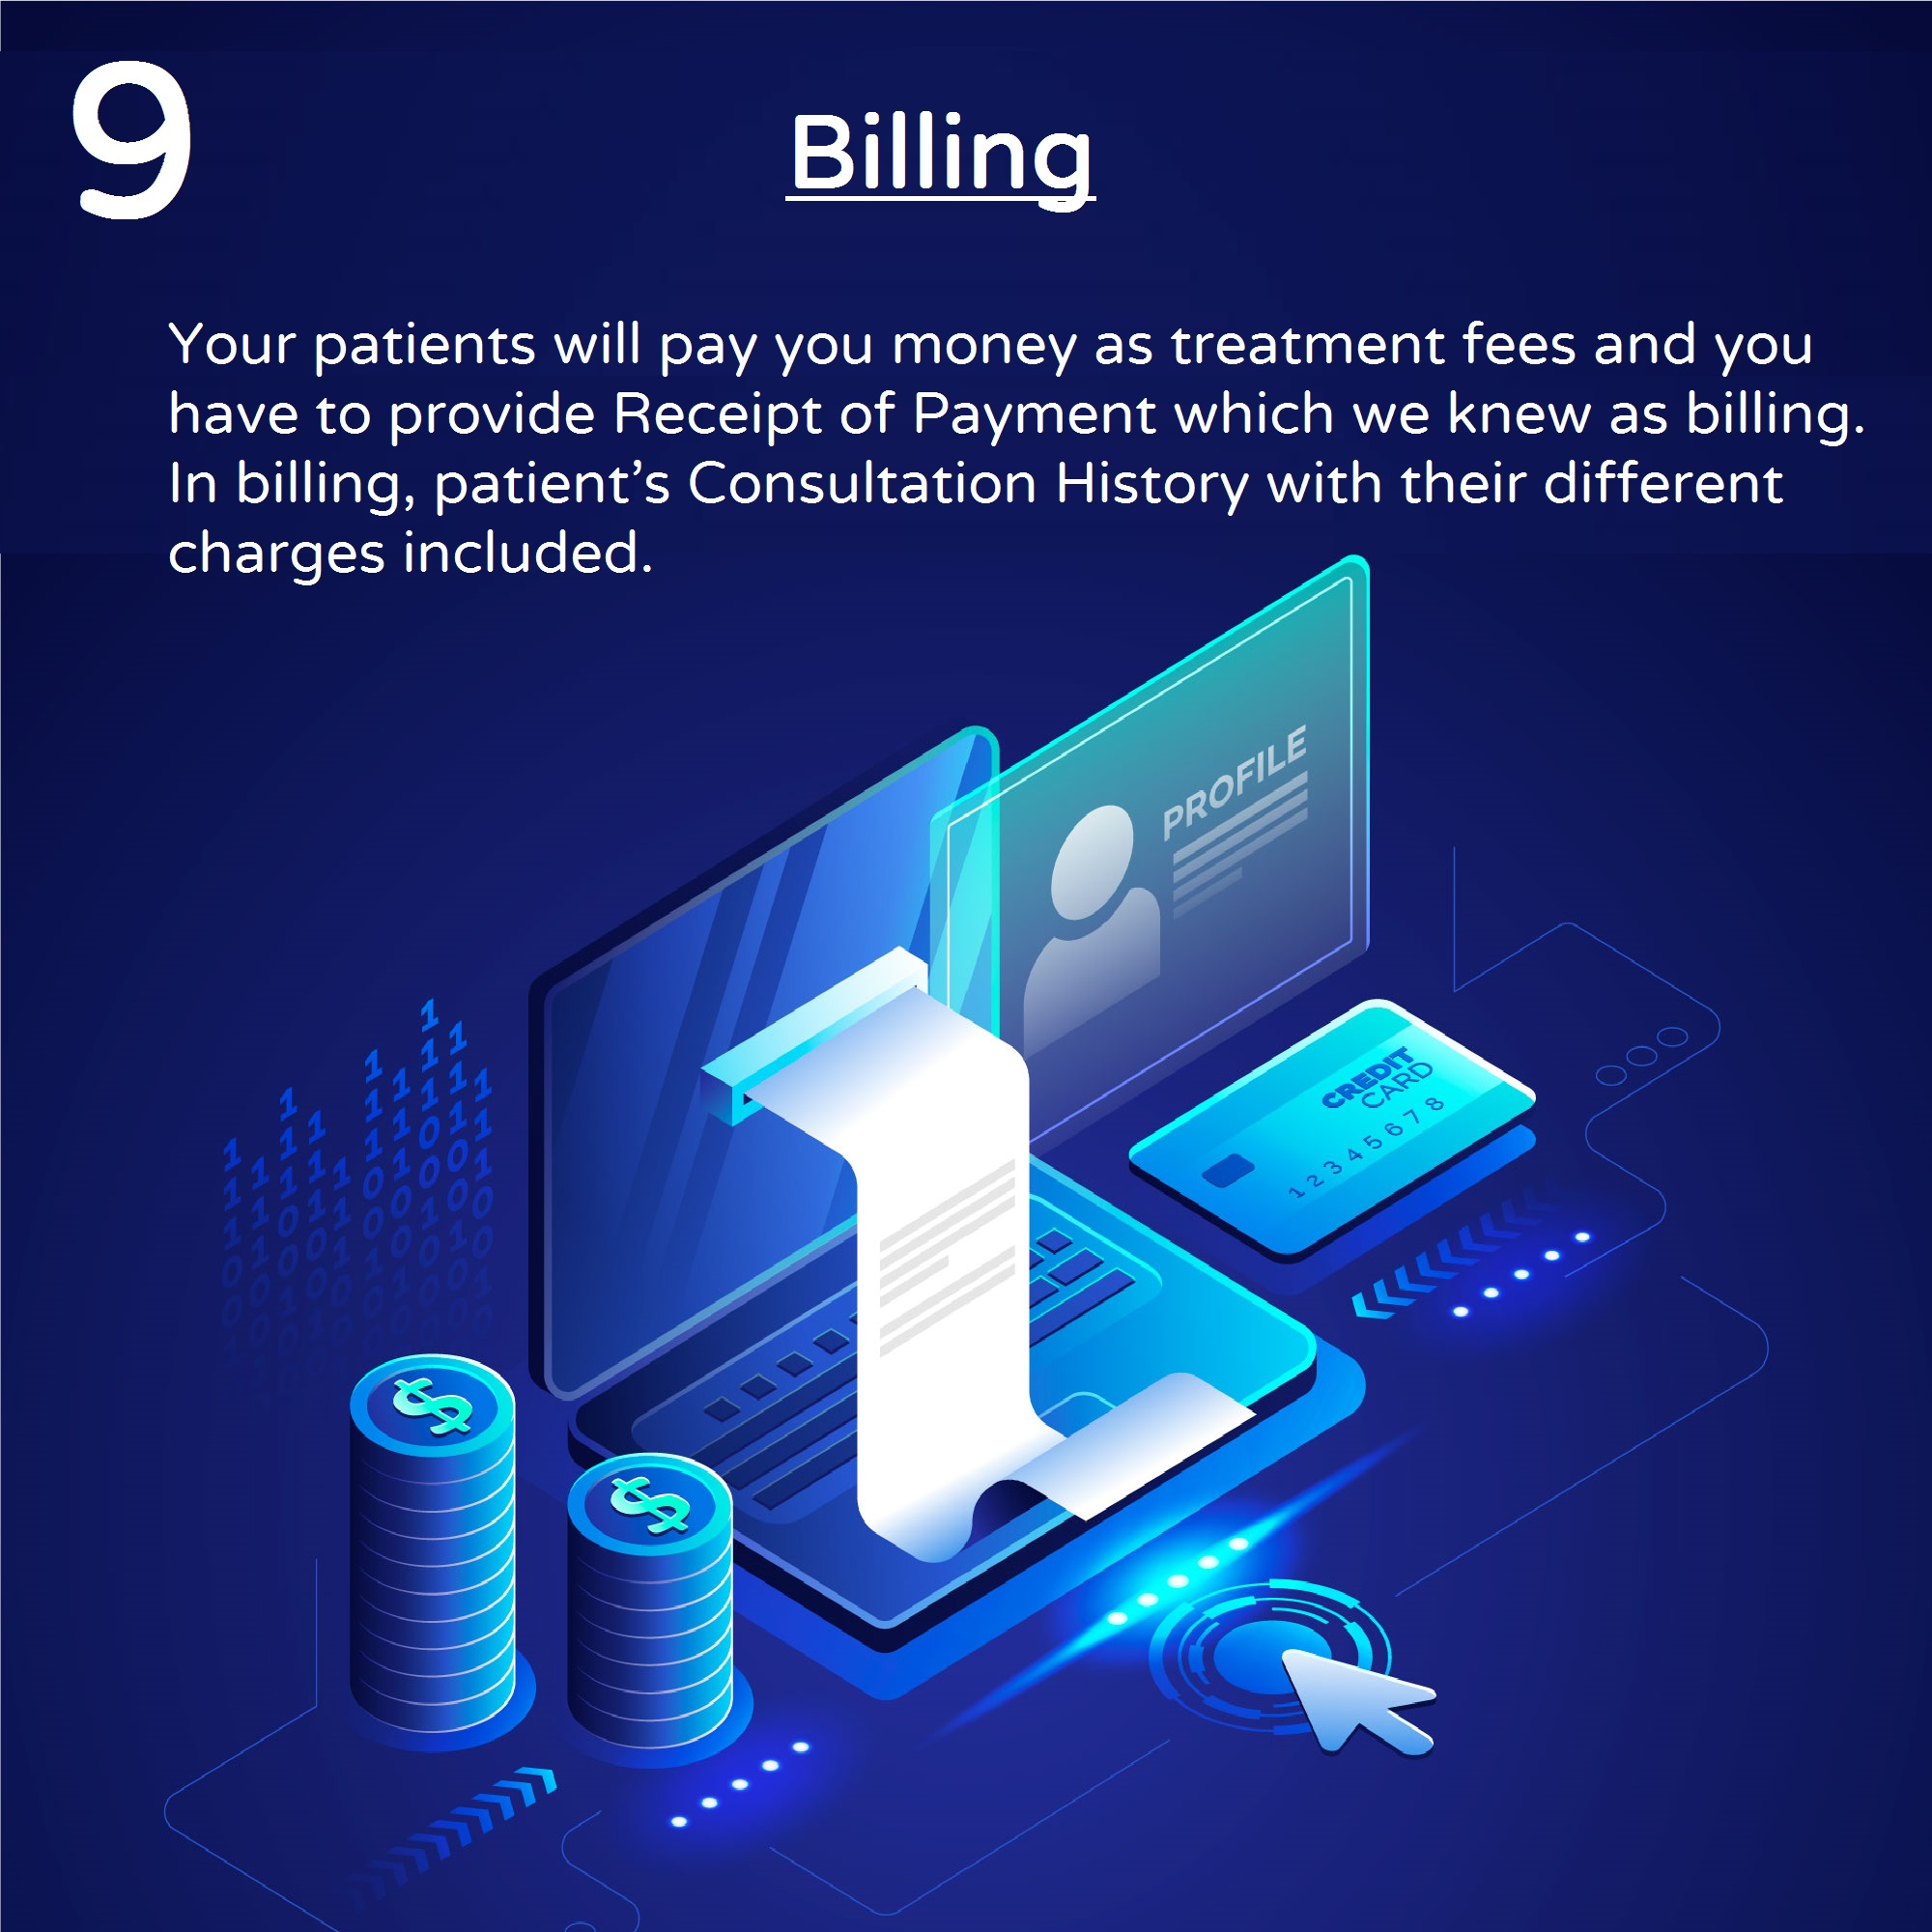 Billing and Payment Screen